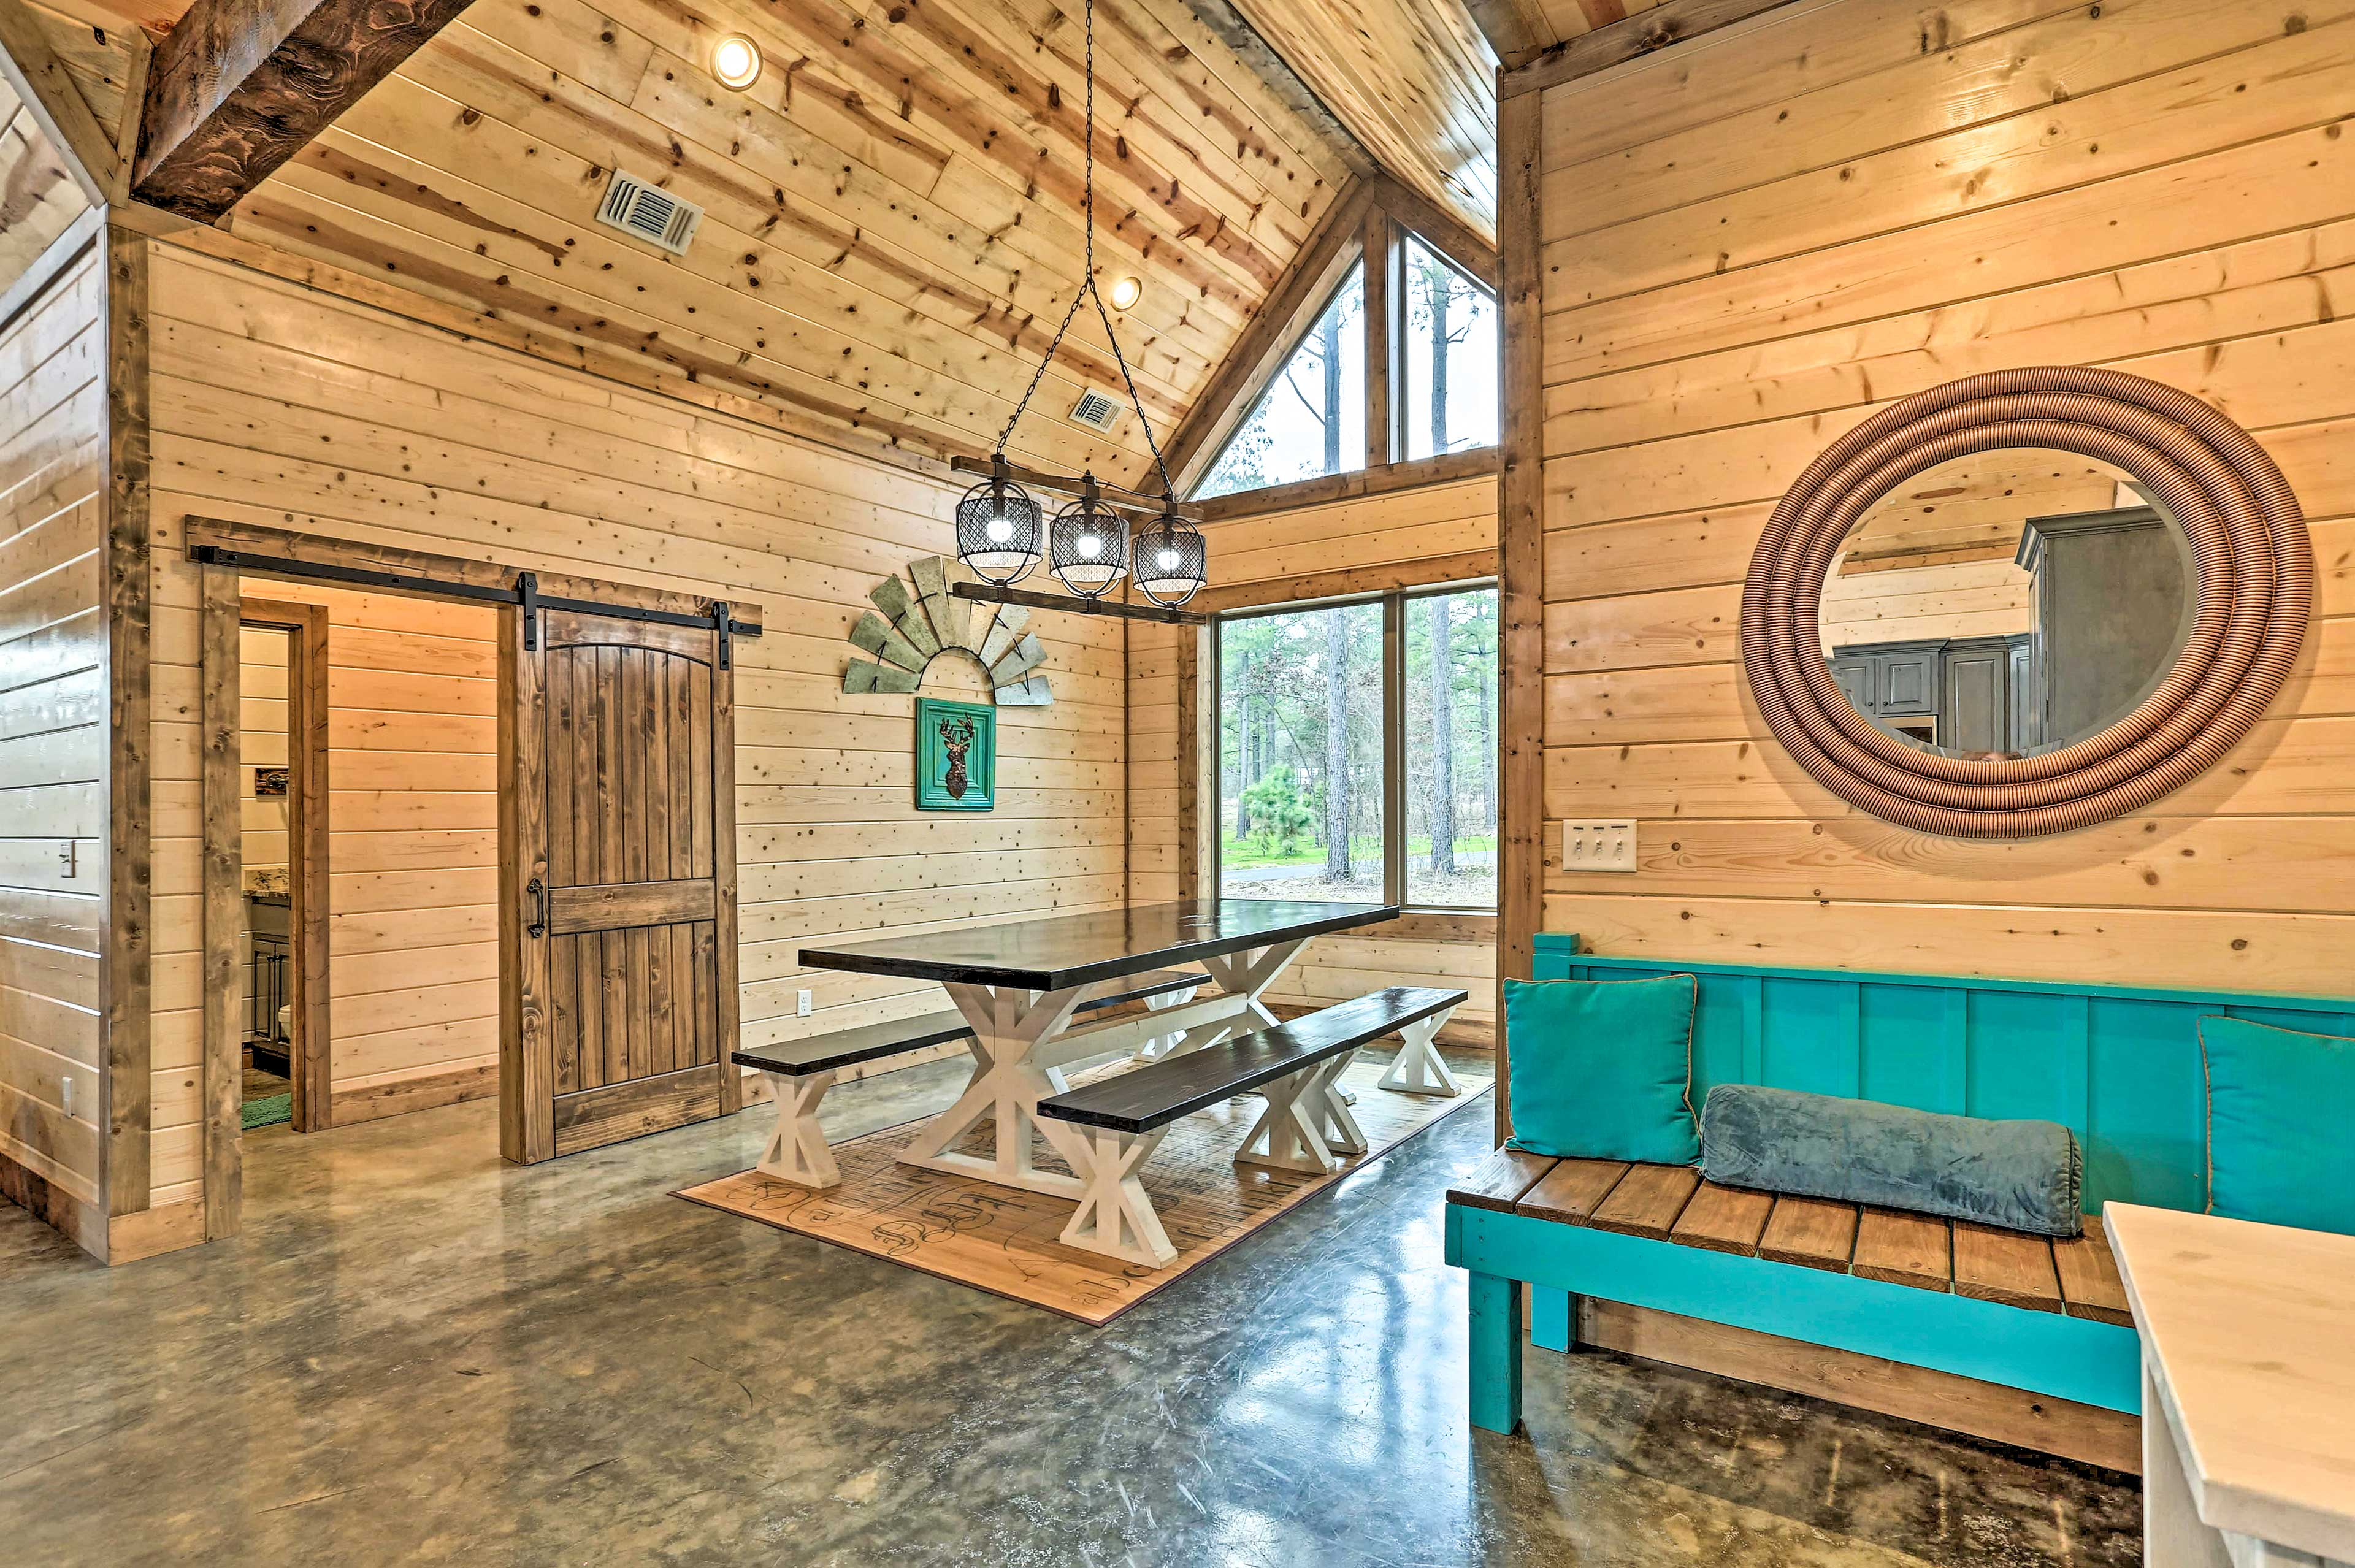 Make yourself comfortable and at home in this spacious and welcoming cabin.